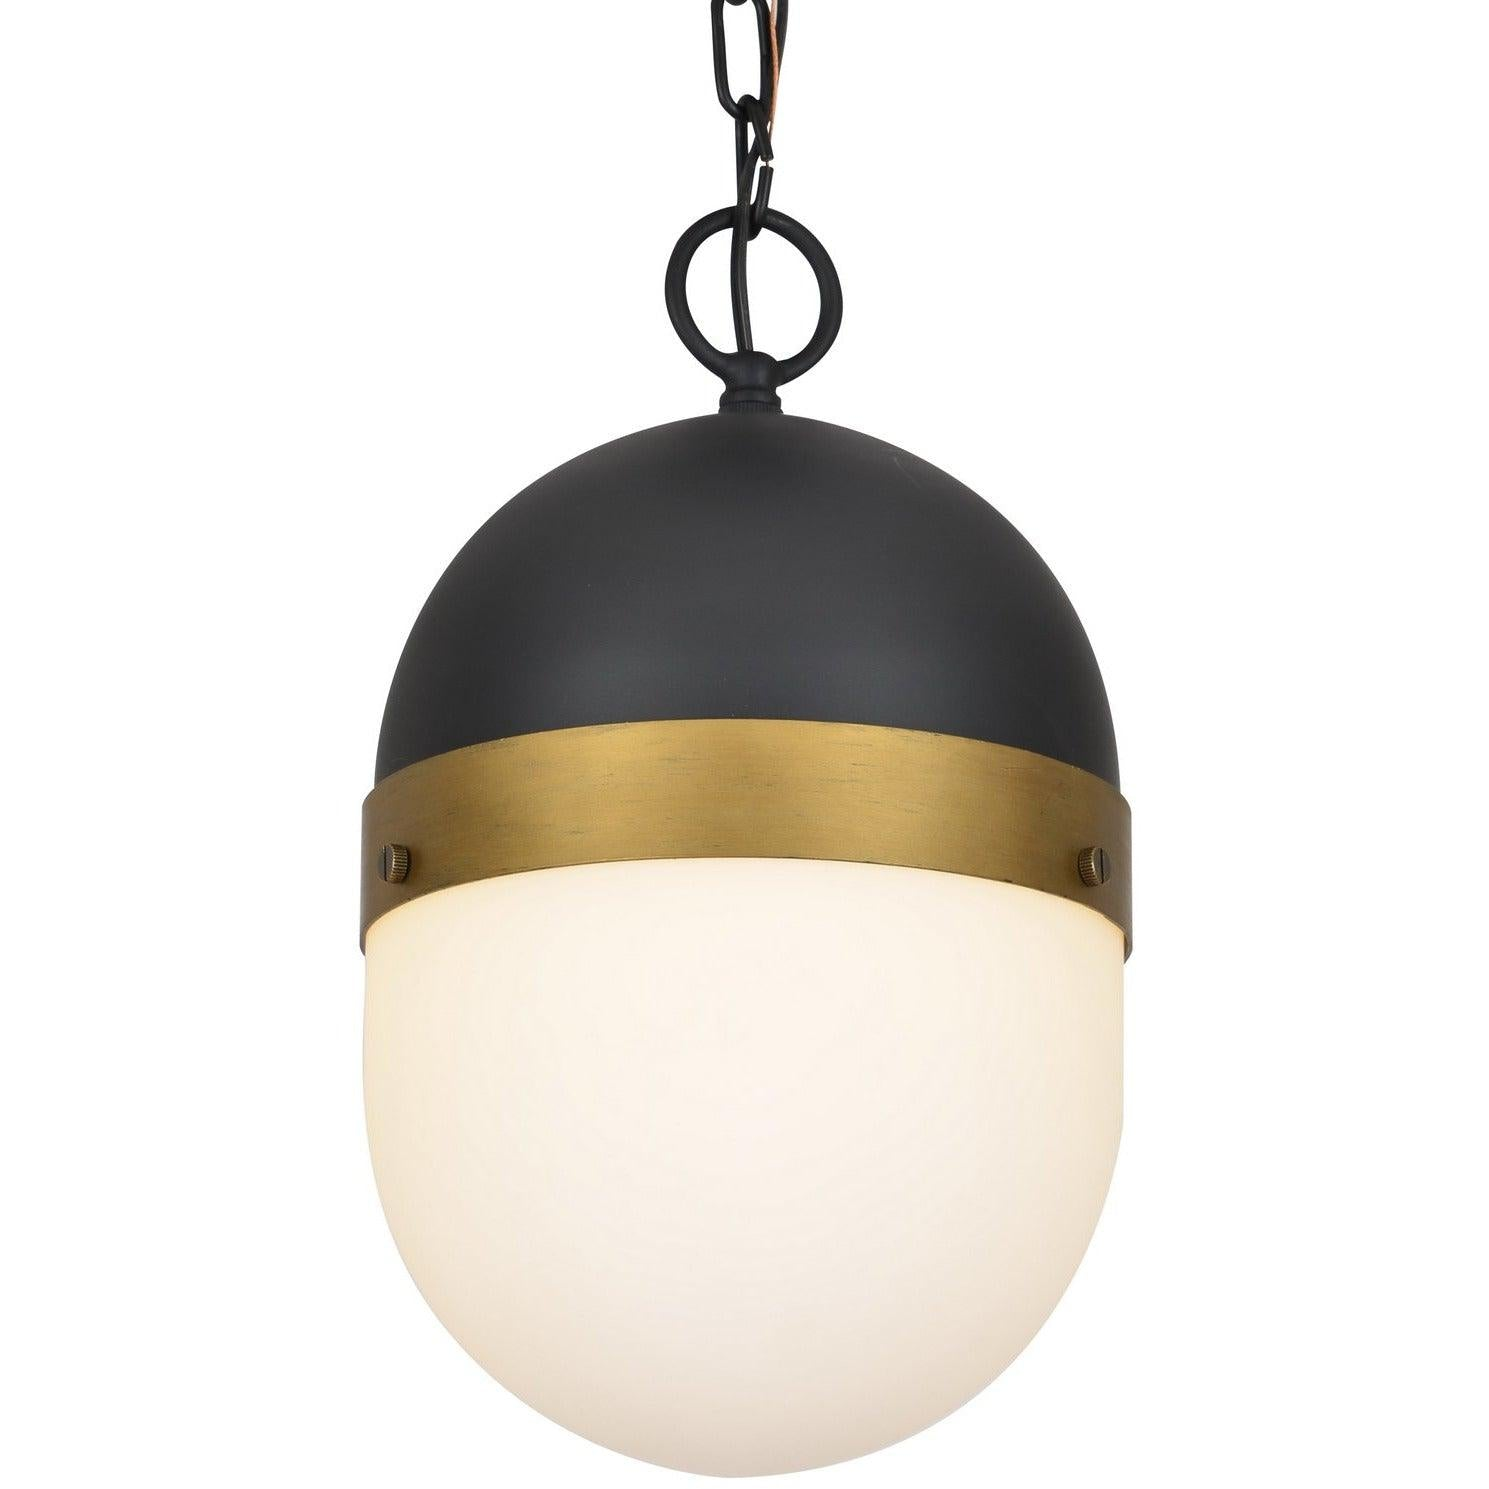 Crystorama - CAP-8507-MK-TG - One Light Outdoor Pendant - Capsule - Matte Black